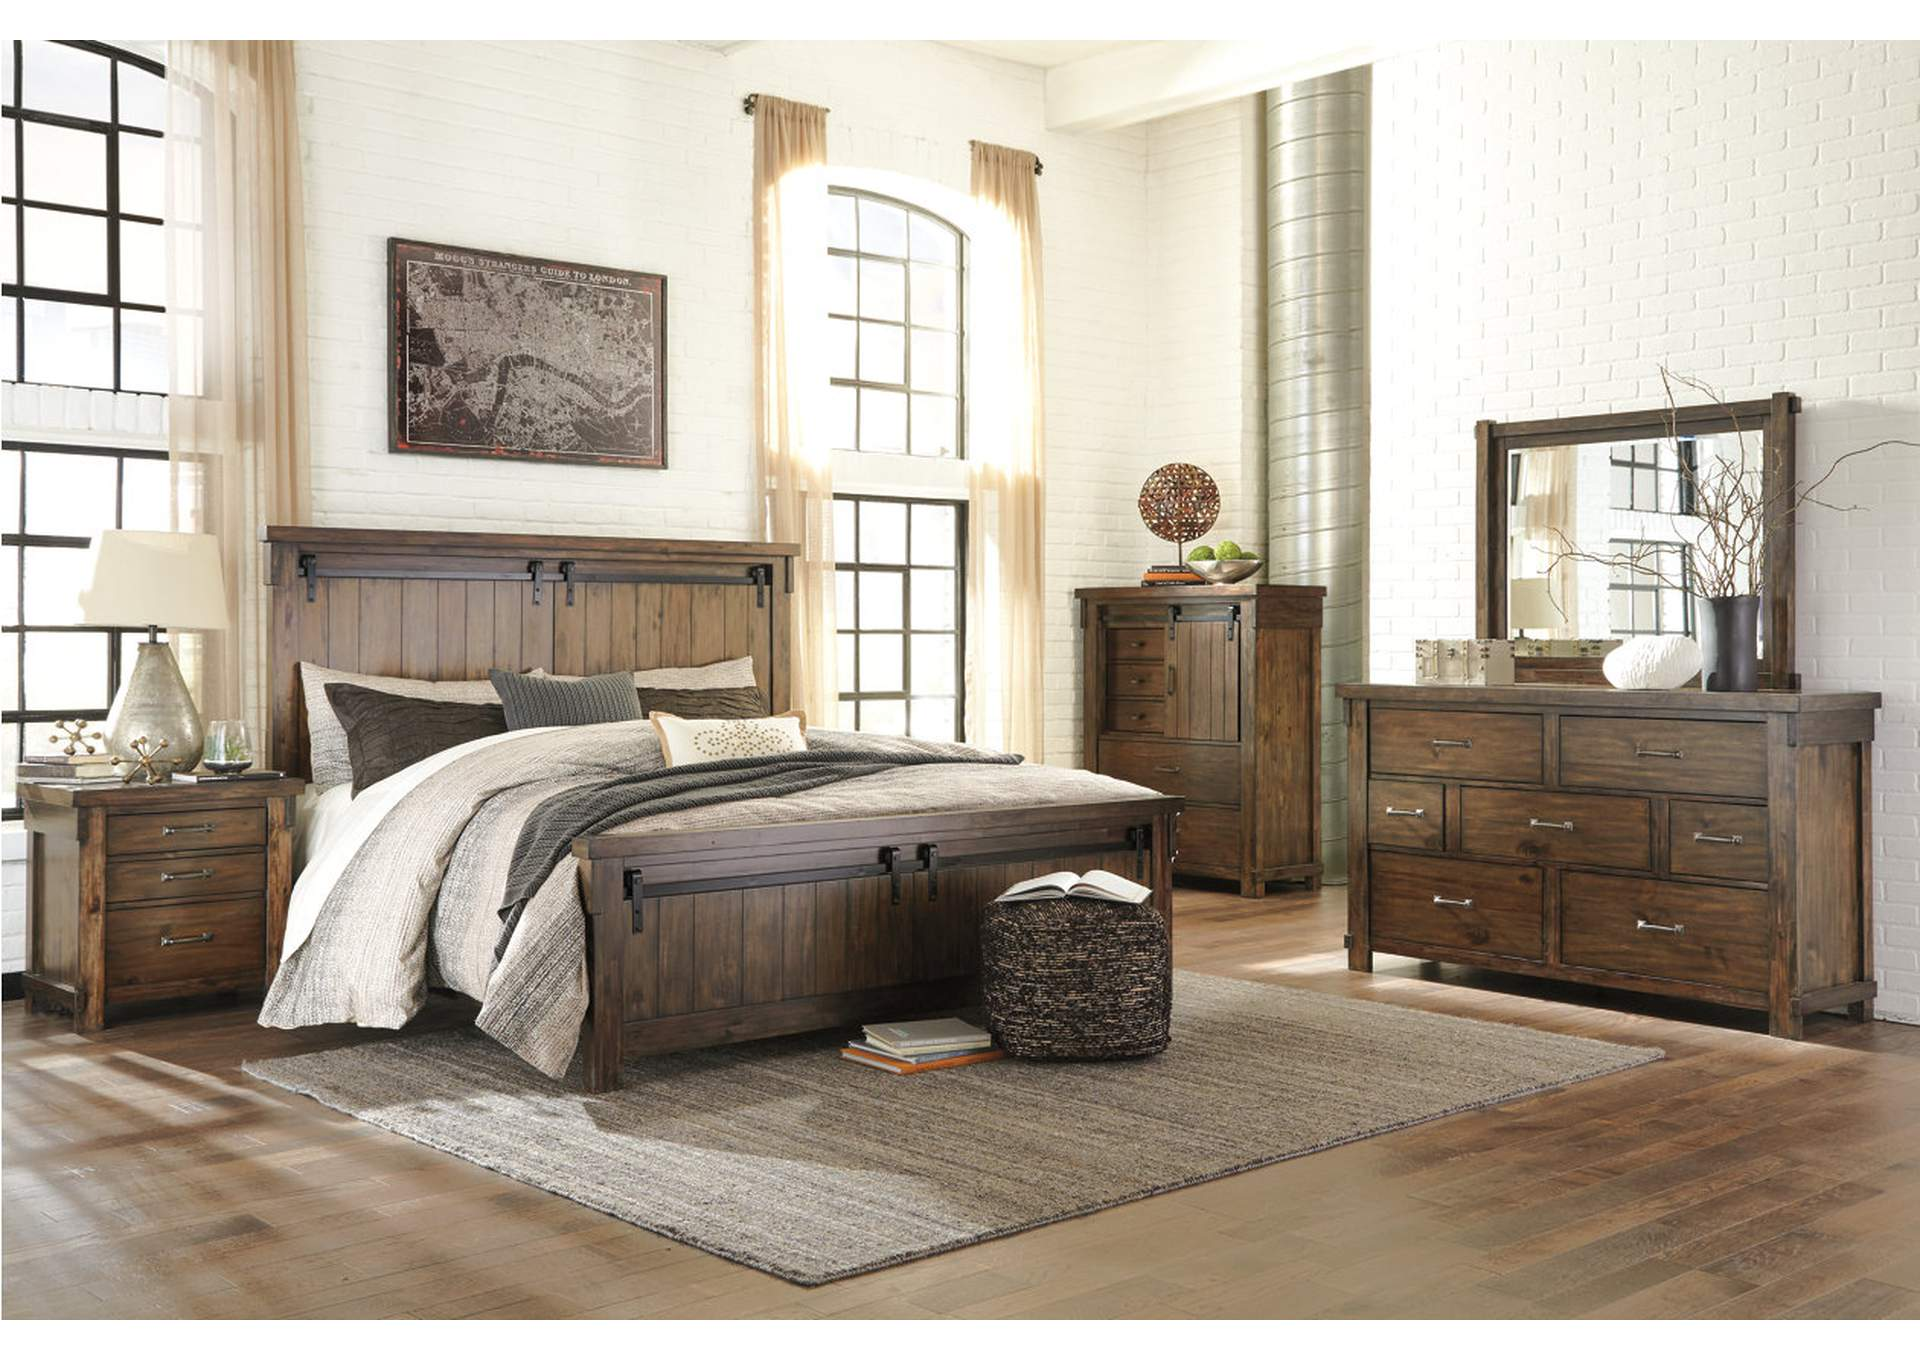 Lakeleigh Brown Queen Panel Bed w/Dresser & Mirror,Signature Design By Ashley